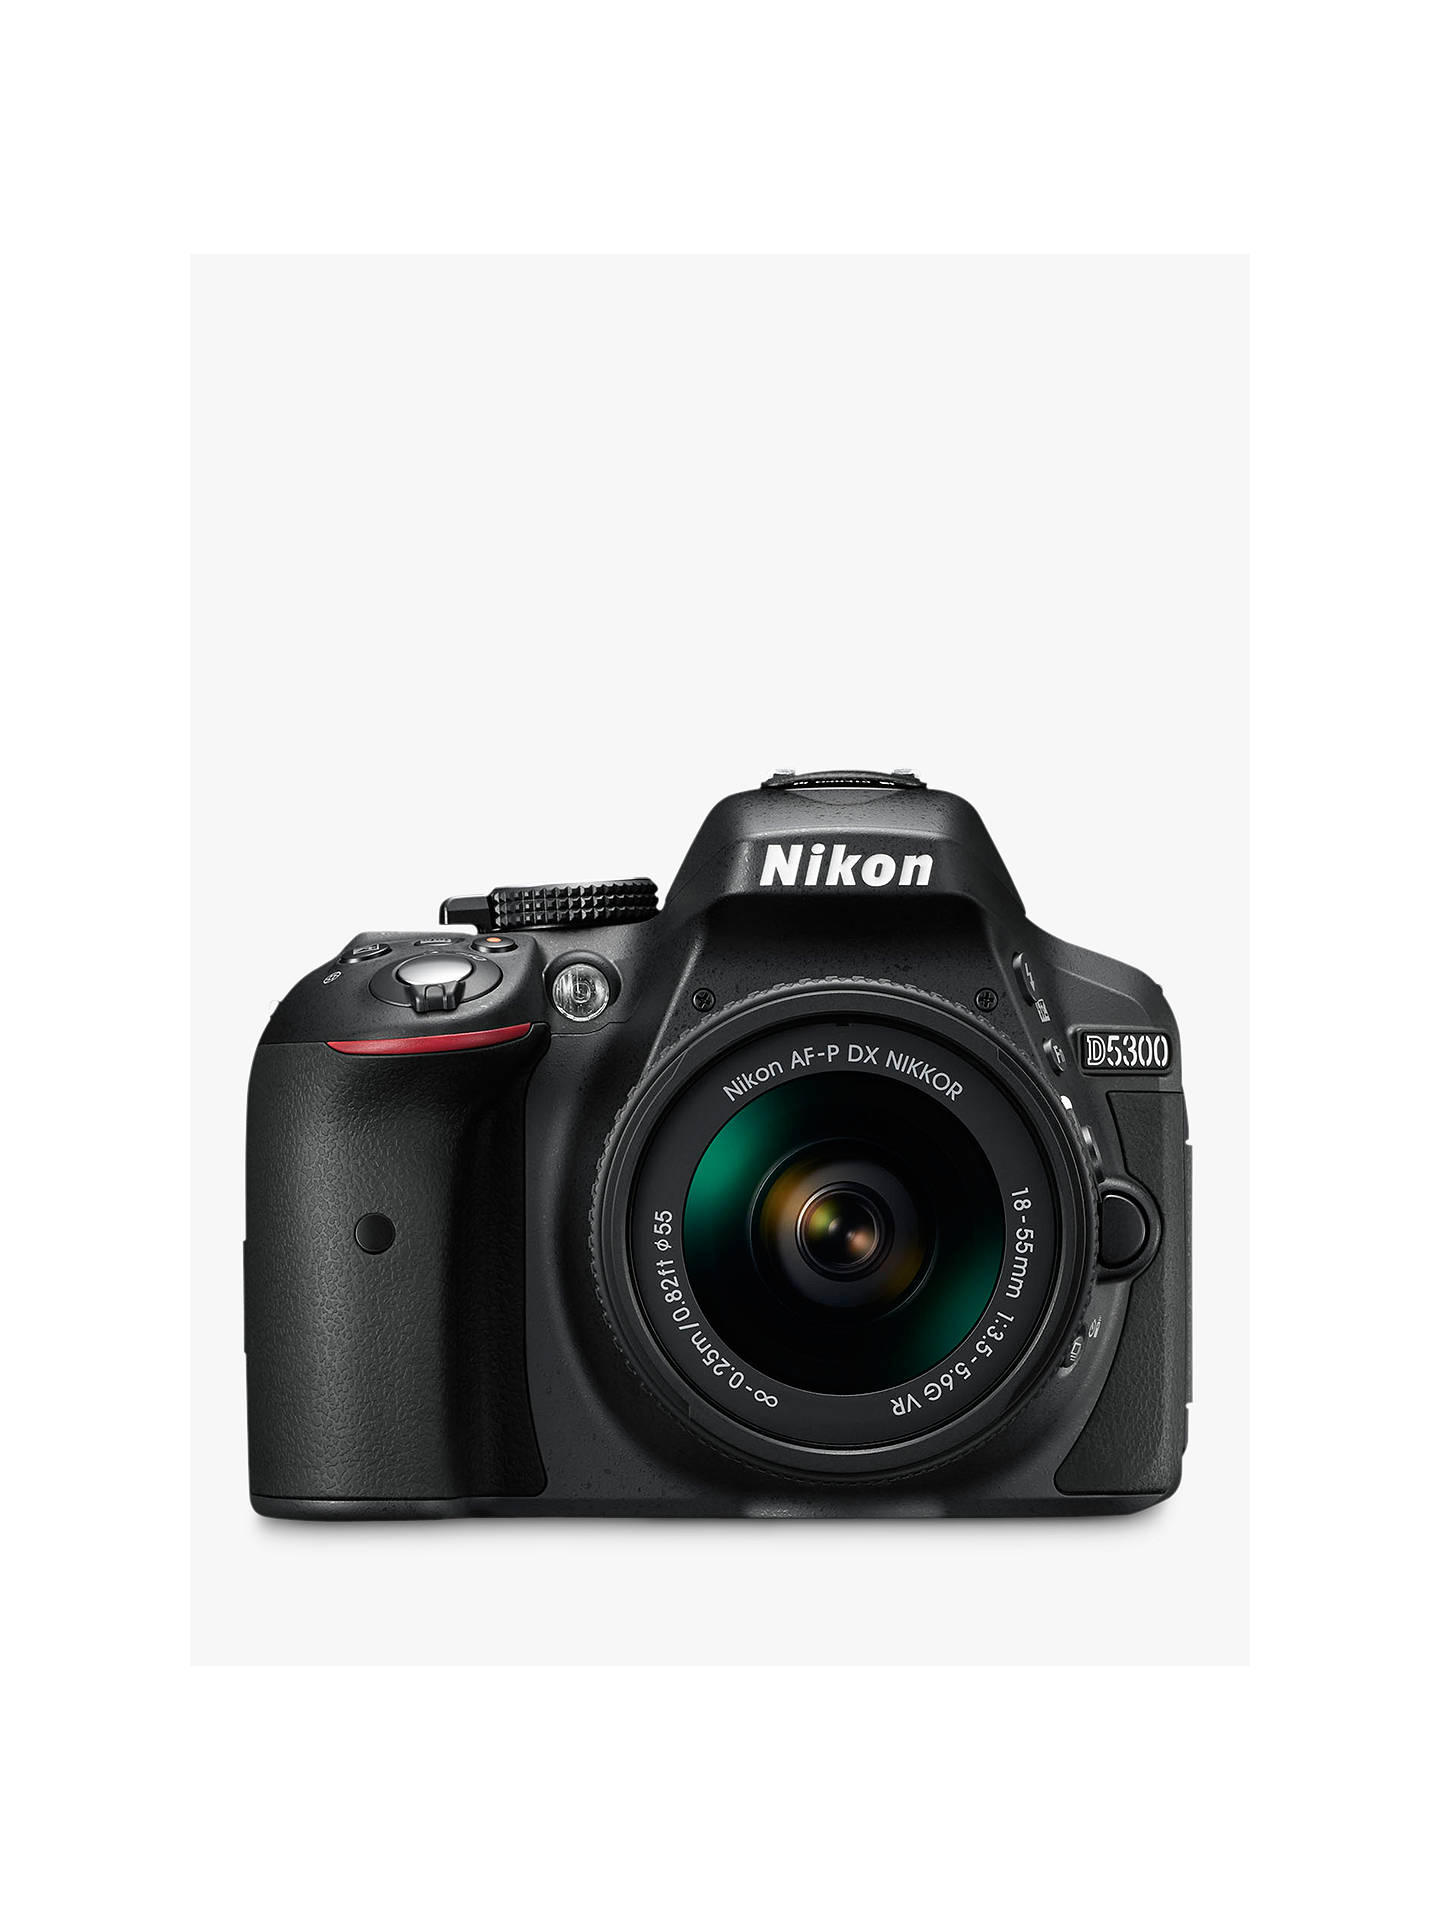 Buy Nikon D5300 Digital SLR Camera with 18-55mm VR Lens, HD 1080p, ...